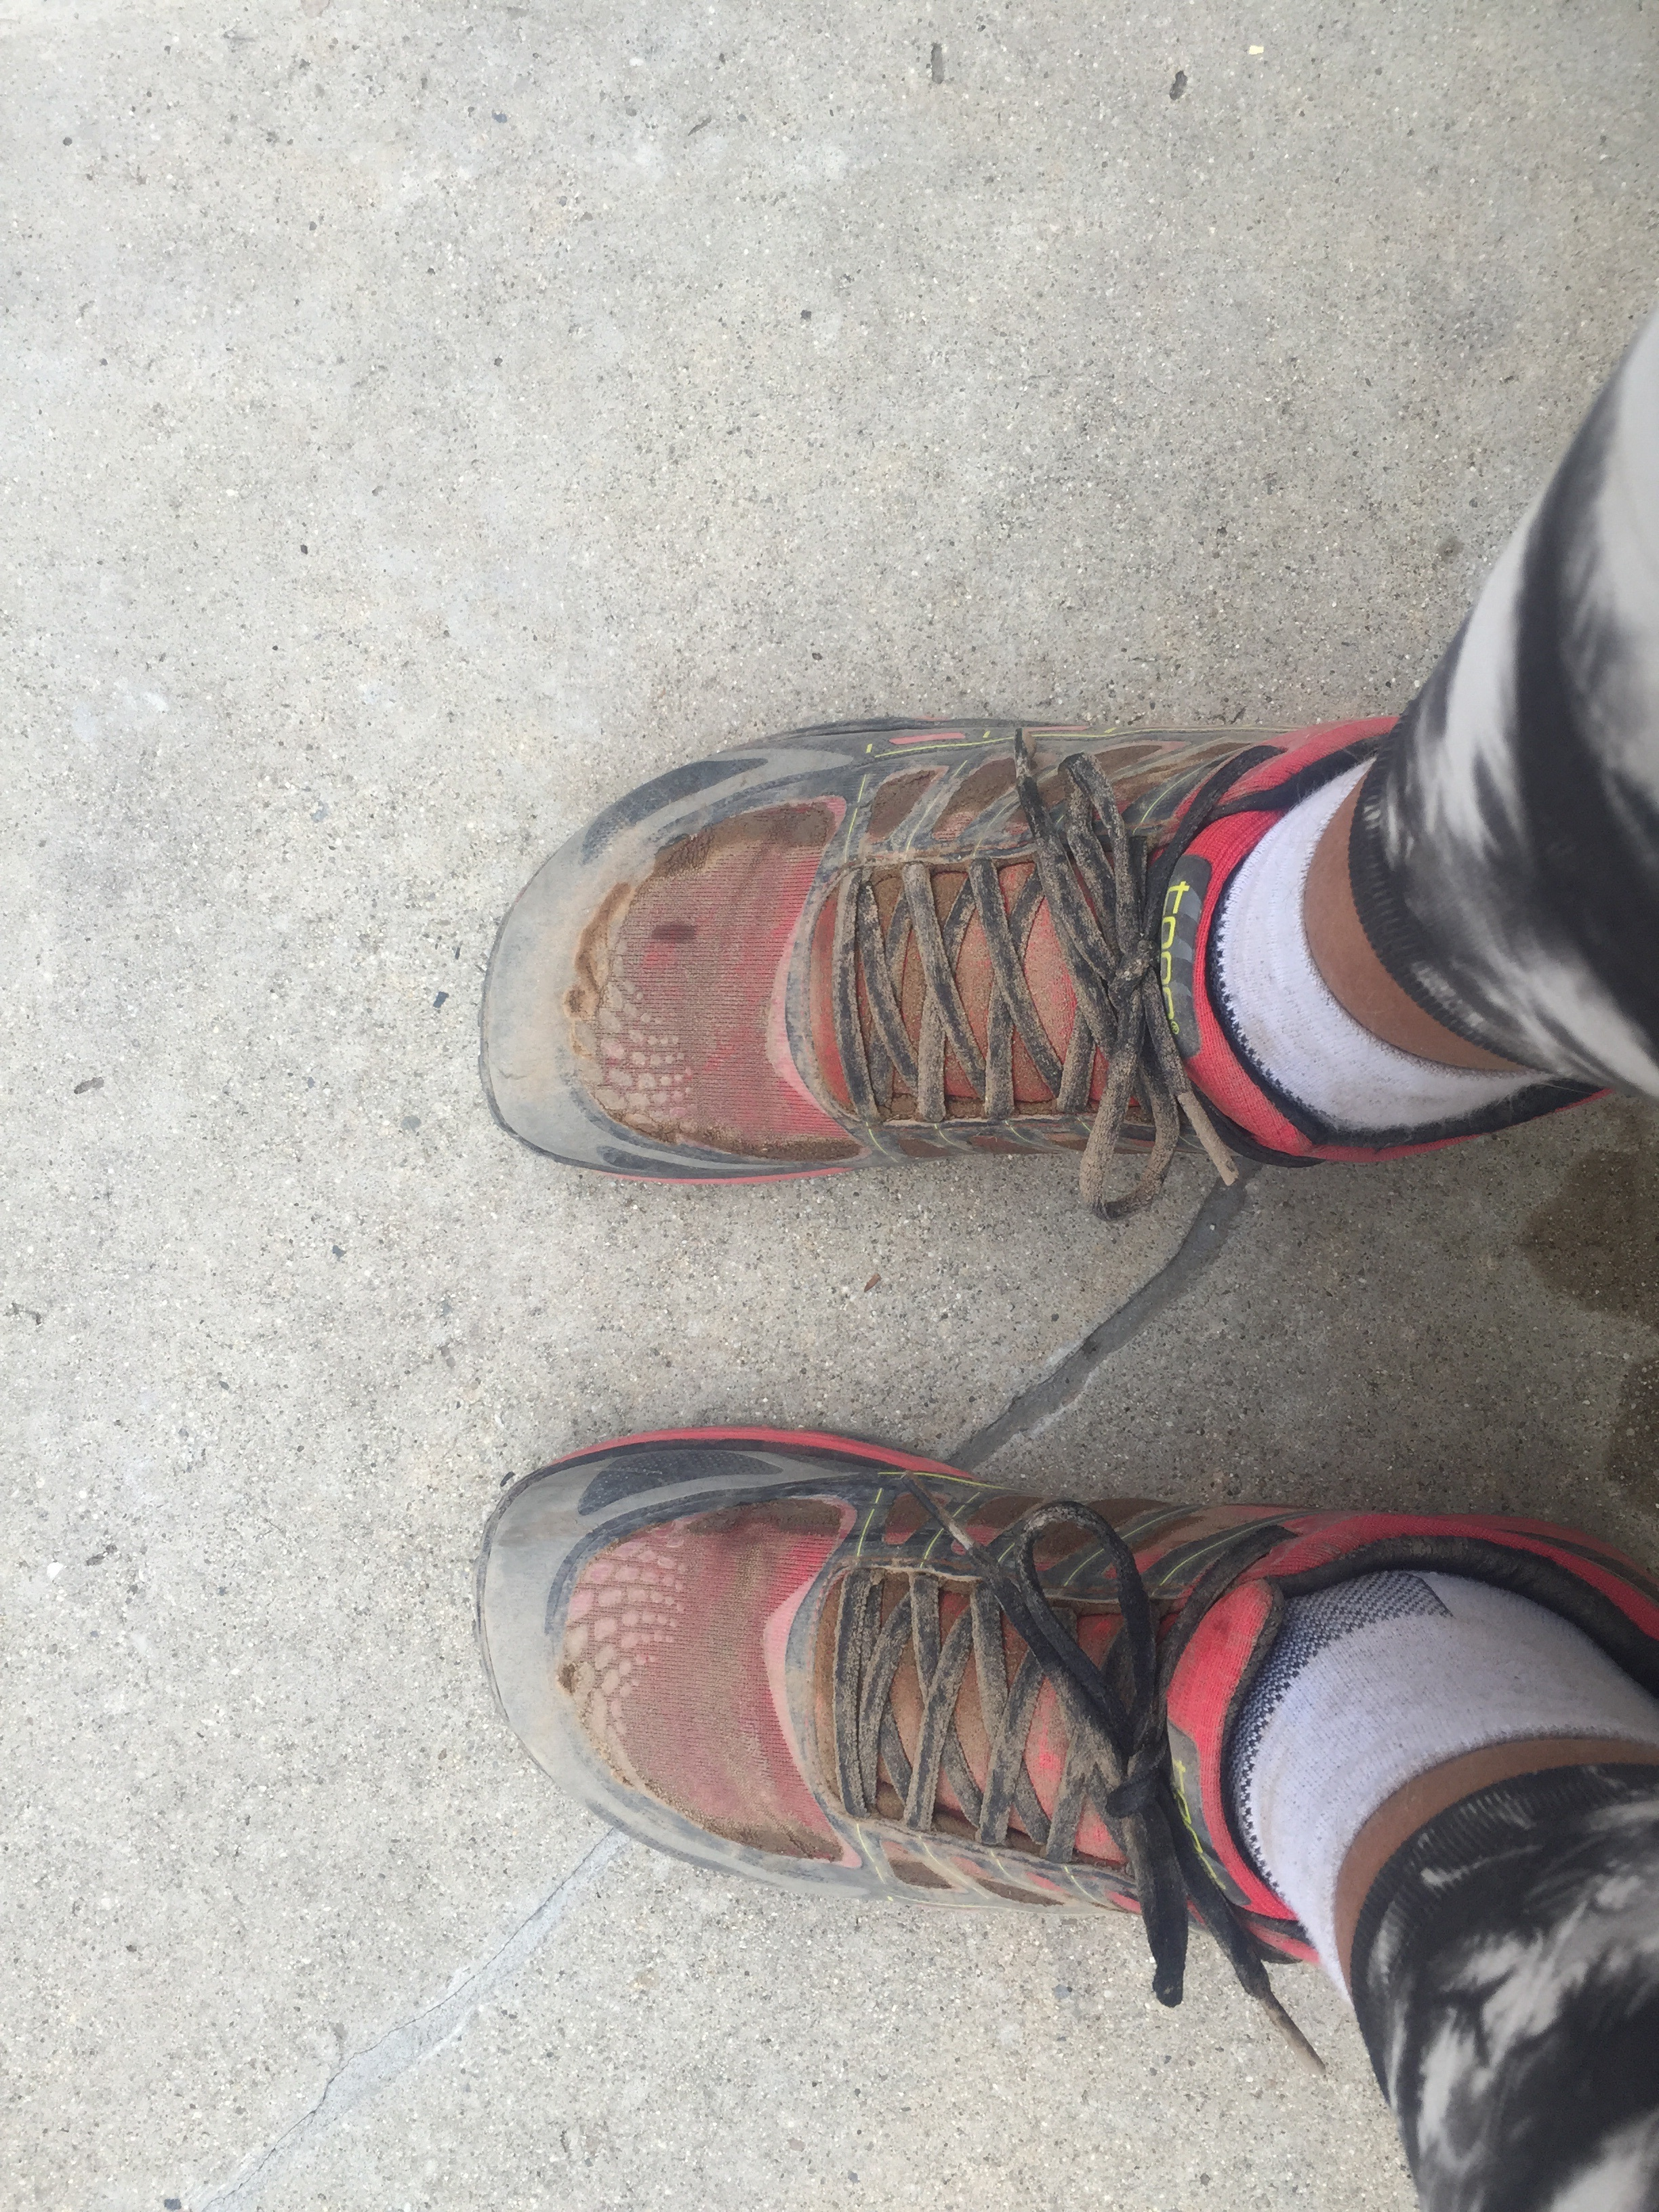 With compression sleeves. After a long run. Dirty and used!